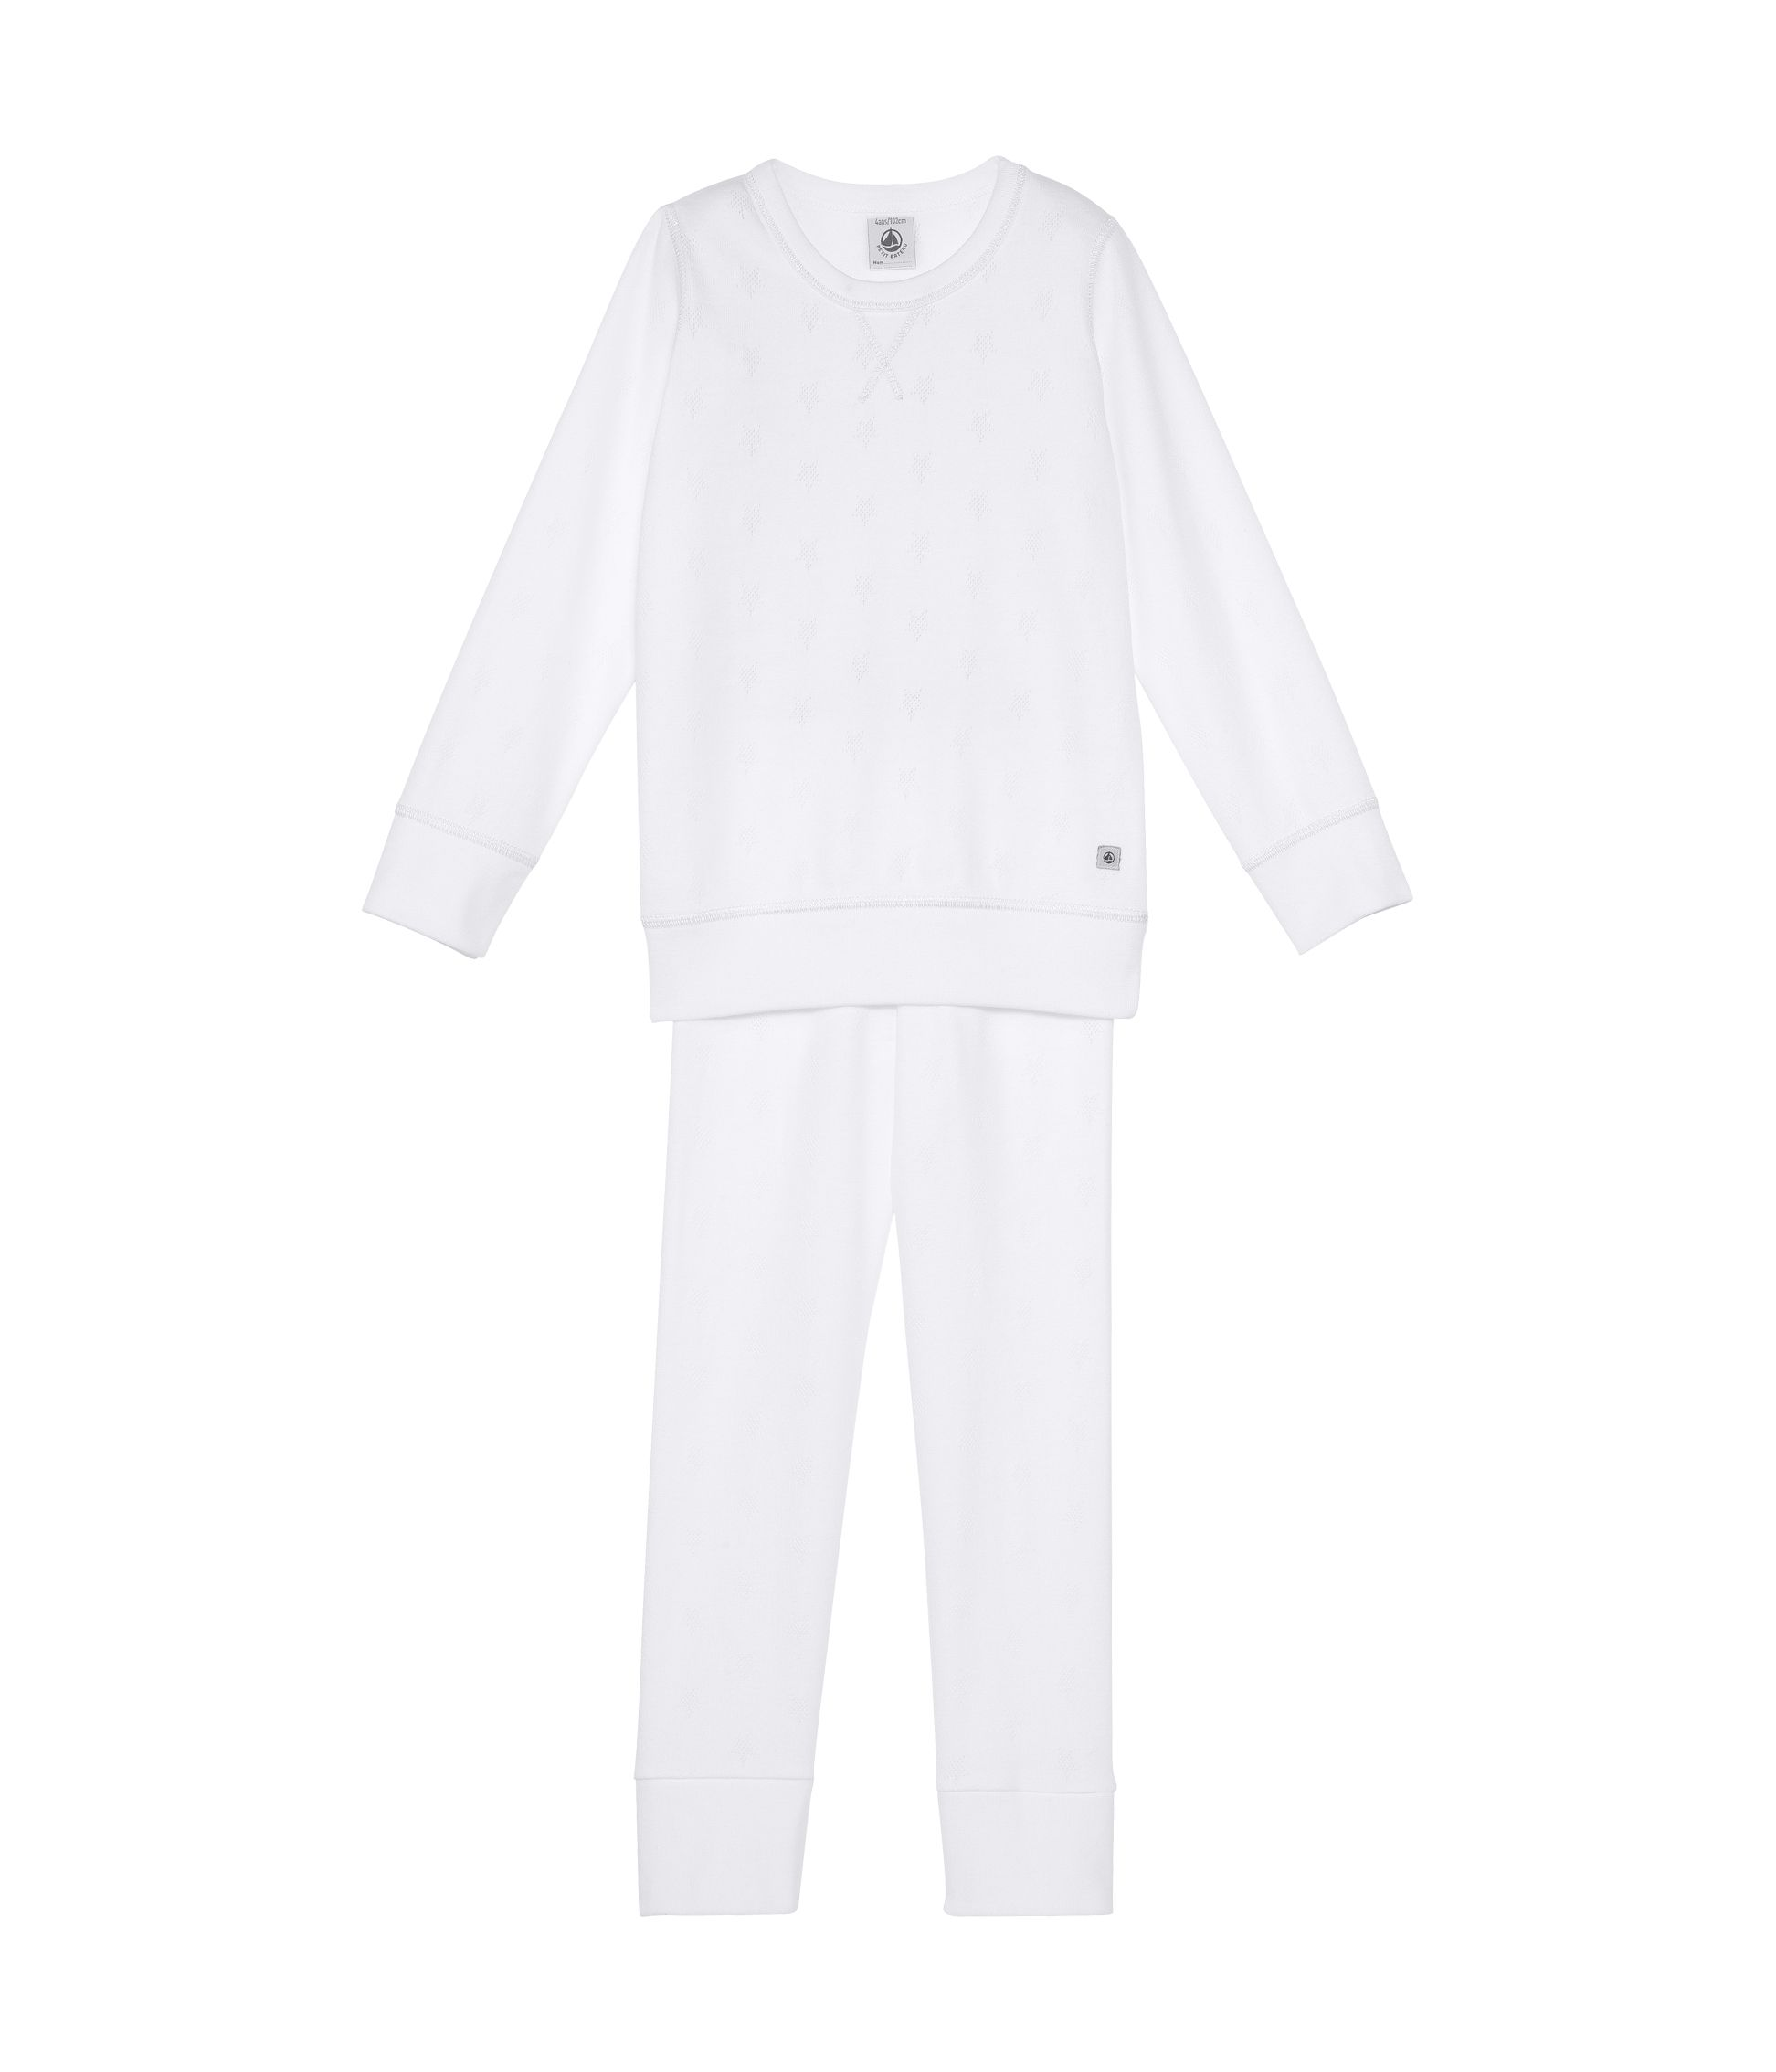 Girls plain rib knit pyjamas